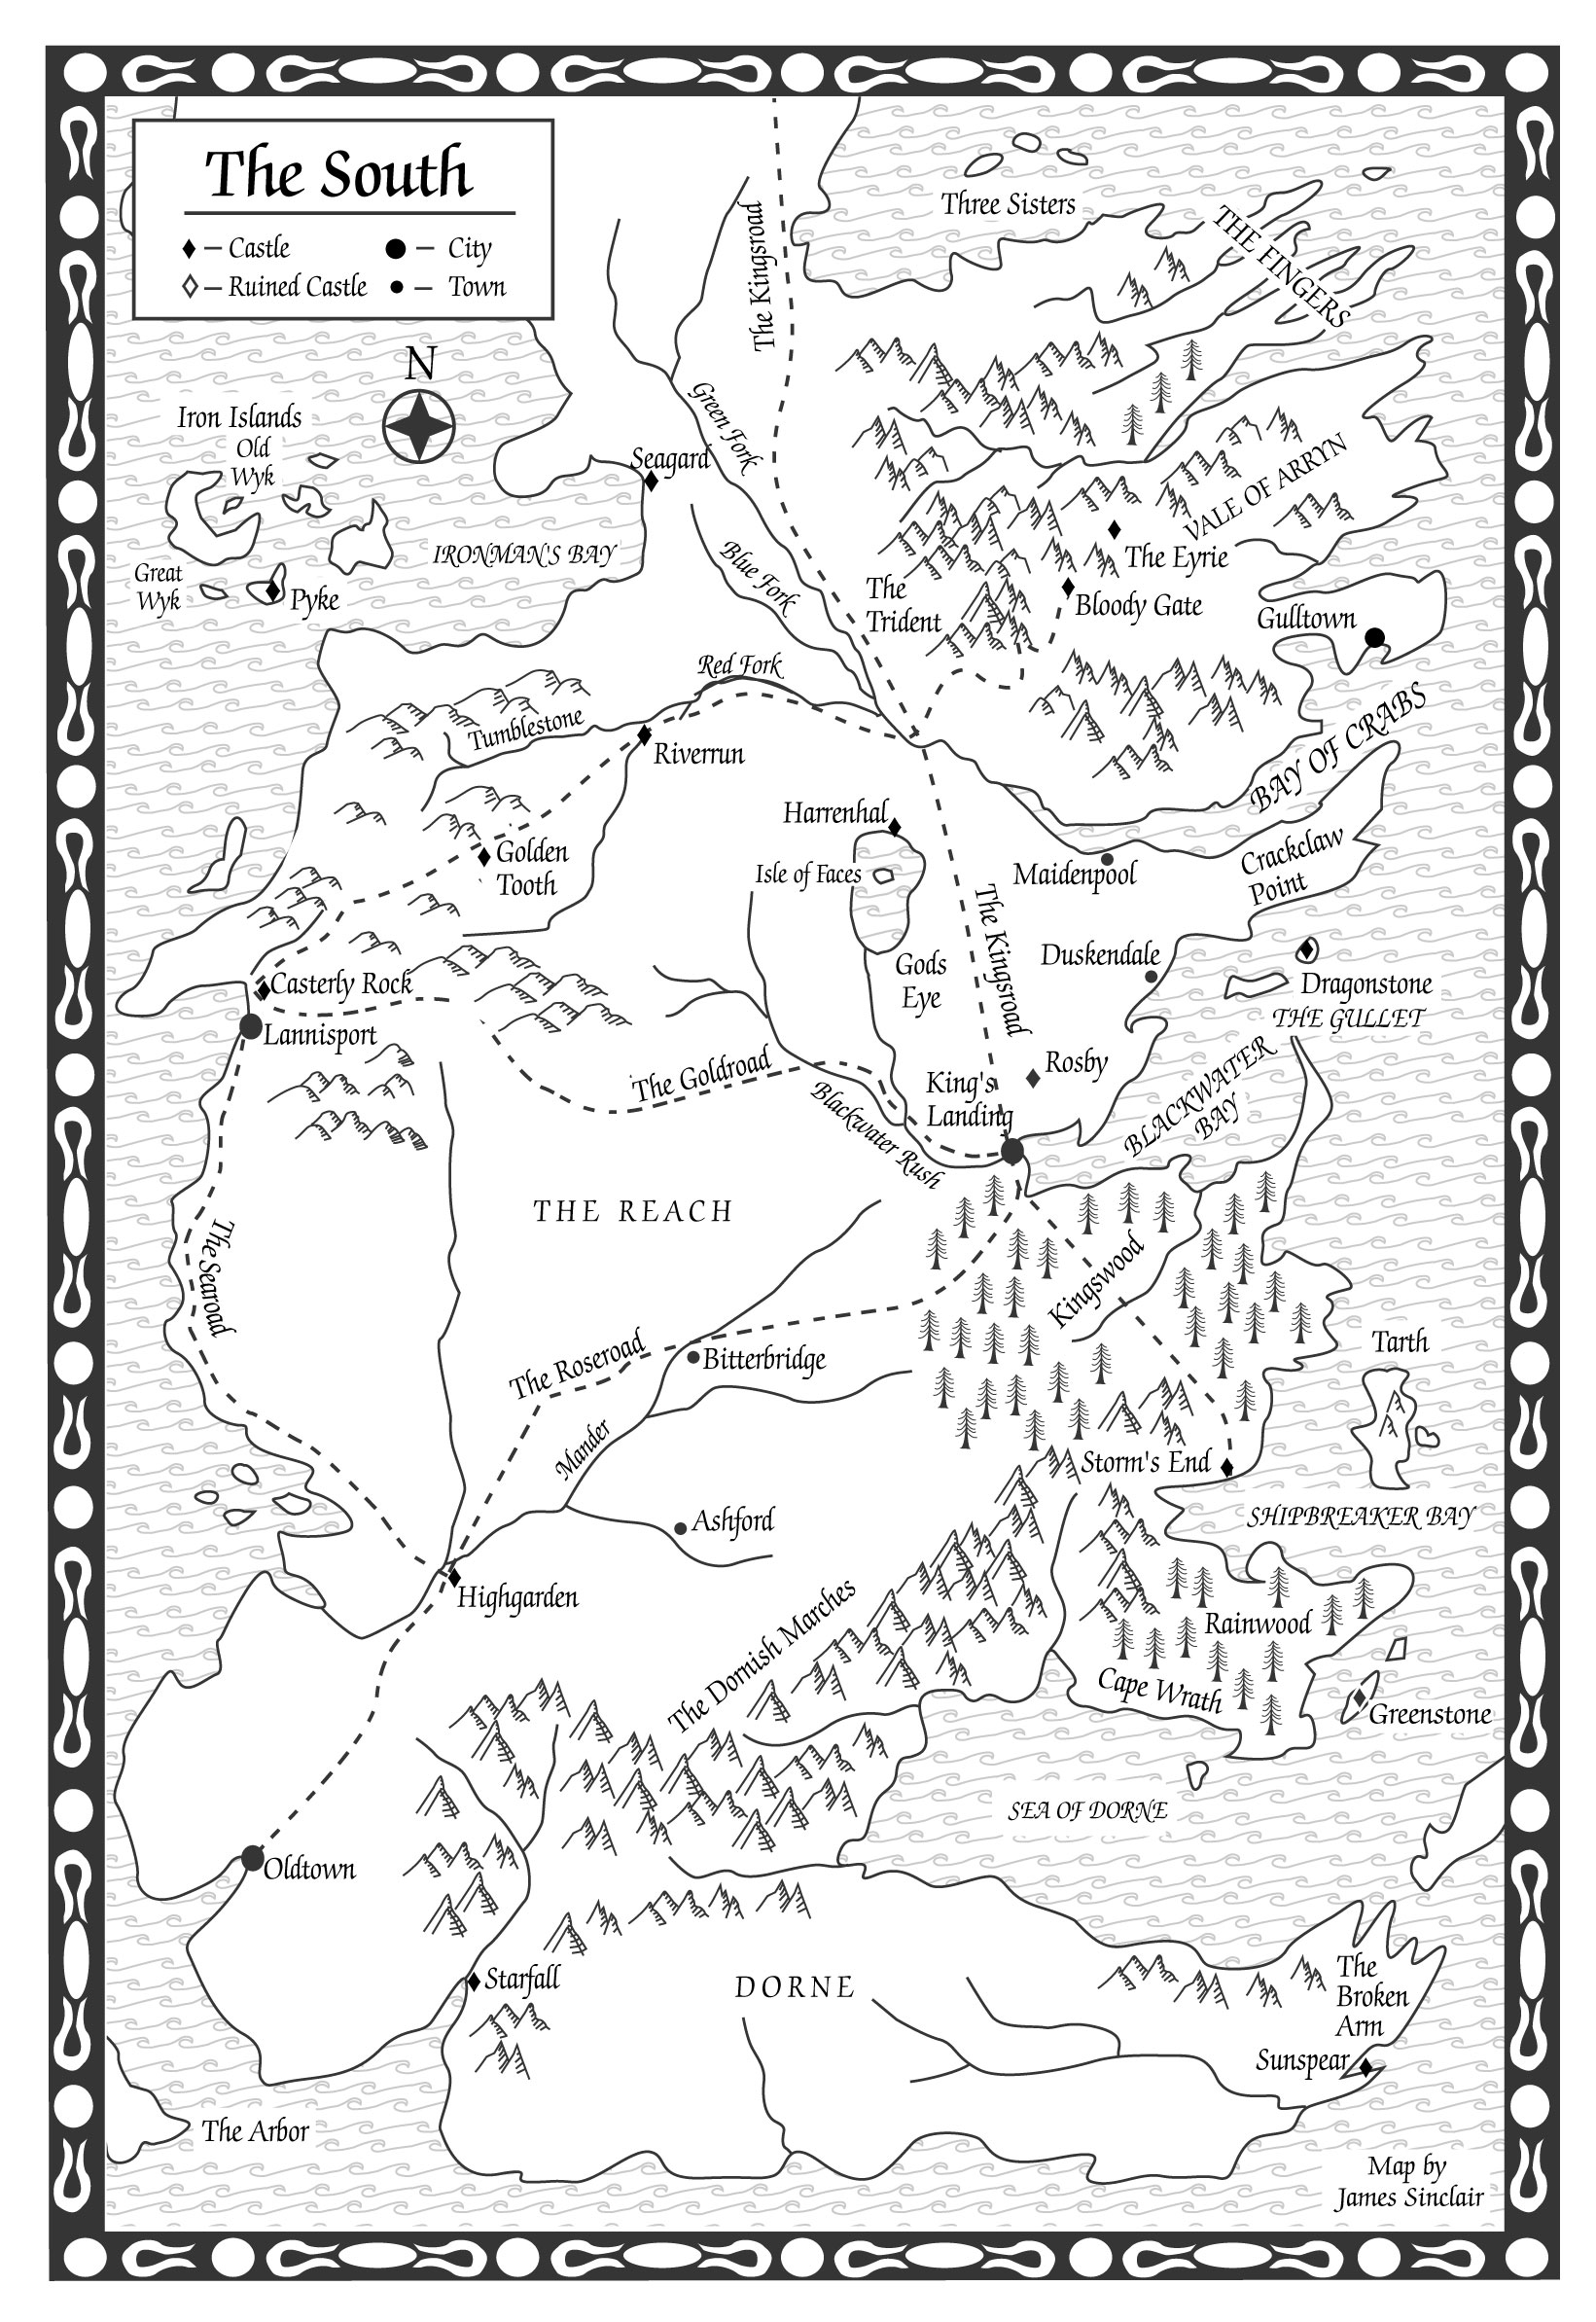 Original game of thrones maps hejorama game of thrones the south map a clash of kings gumiabroncs Image collections